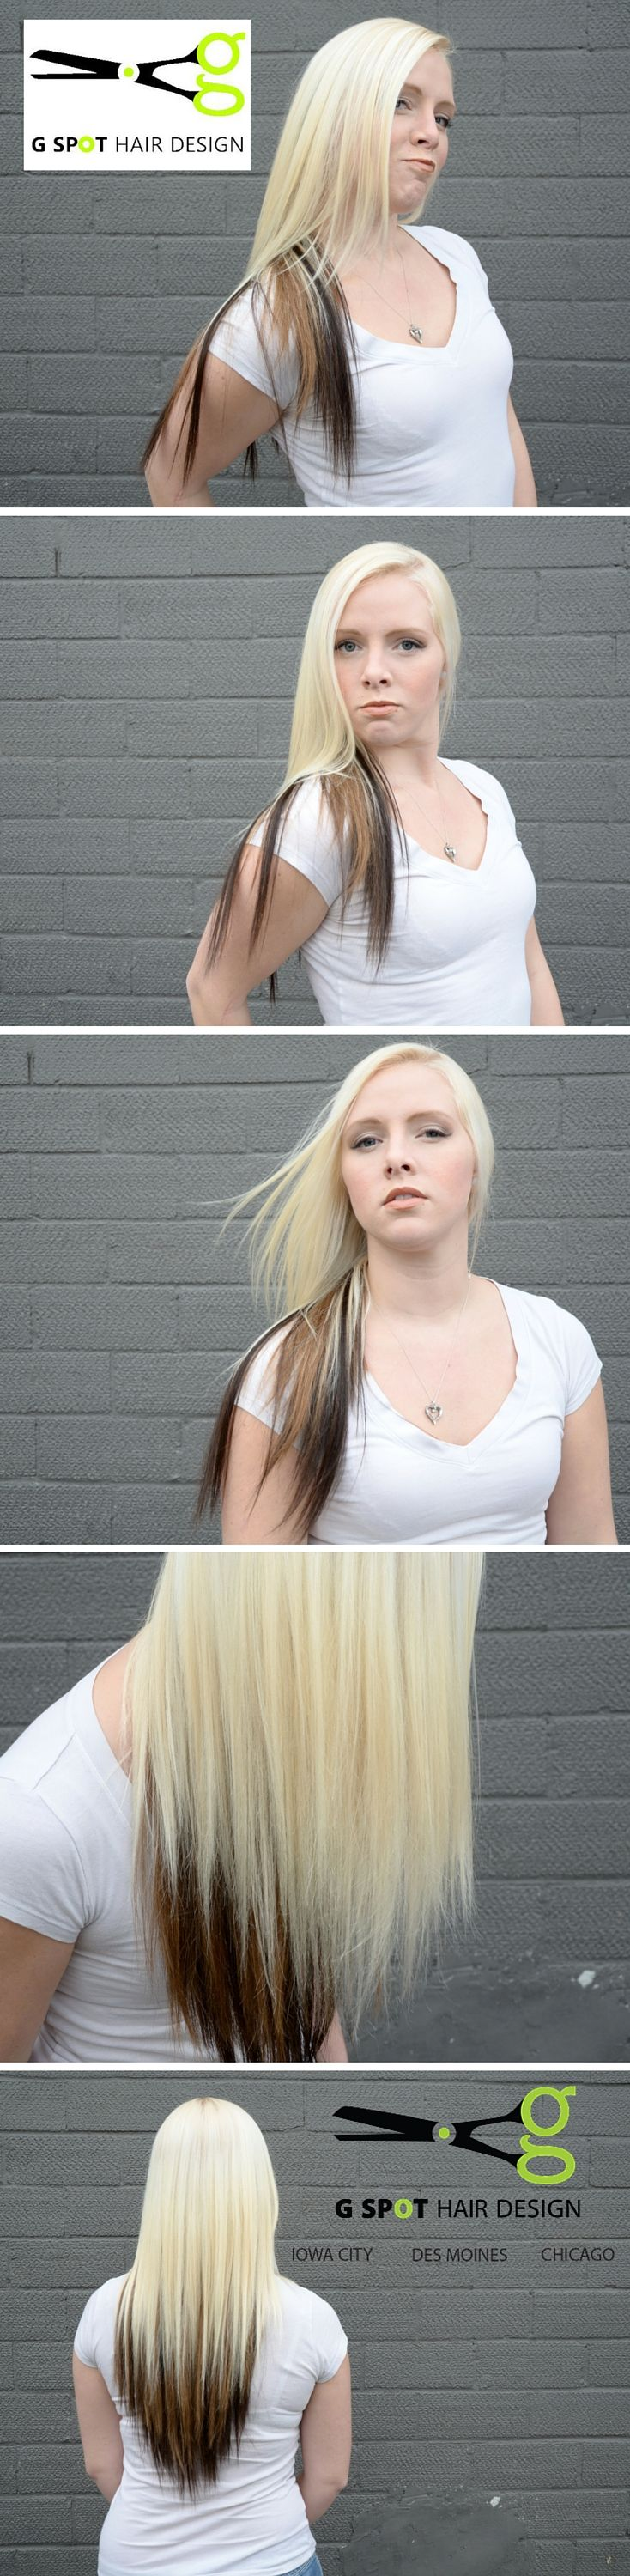 34 best extensions by g spot hair design images on pinterest kayla with cut color and our all natural sewn in hair extensions ours is pmusecretfo Choice Image